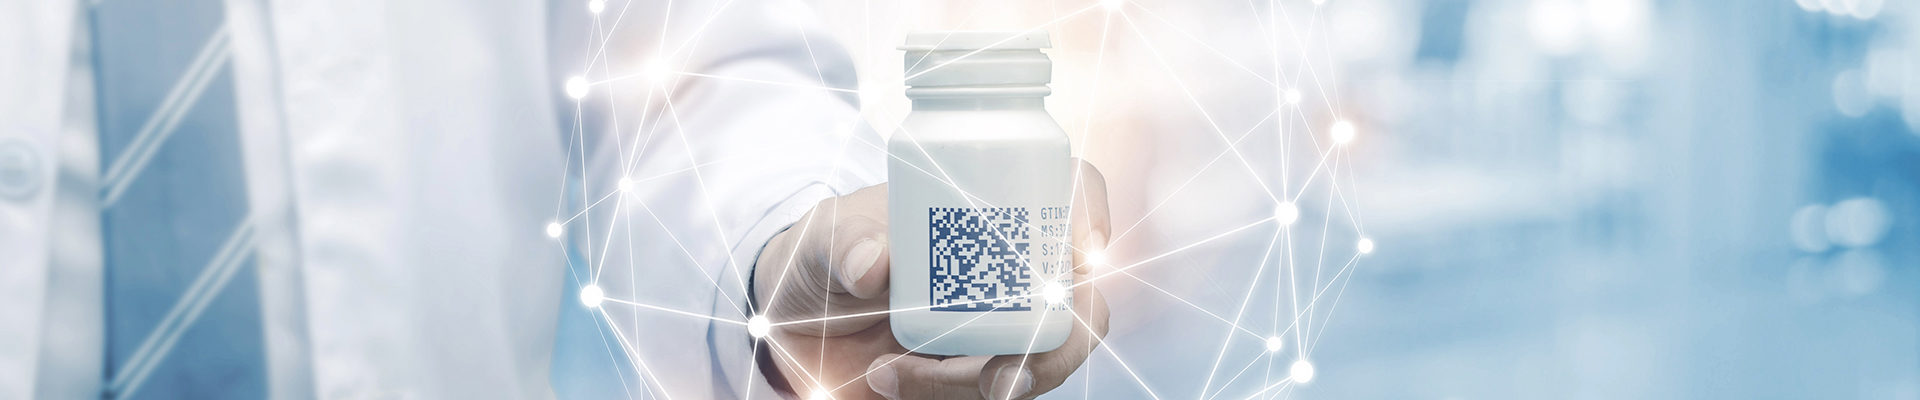 Track-and-Trace Solutions for the Pharmaceutical Industry